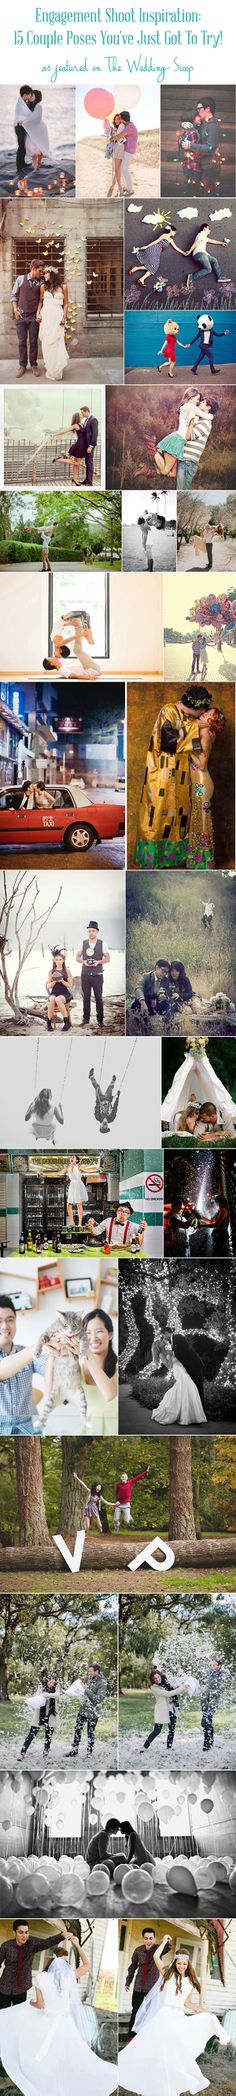 15 couple poses you've just got to try! If you're thinking about having an engagement session and are not sure what to do or how best to pose, then you can take some cues from these couples and their photographers for images that win on so many levels! http://www.theweddingscoop.com/entry/engagement-shoot-inspiration-15-couple-poses-you-ve-just-got-to-try #engaged #engagement